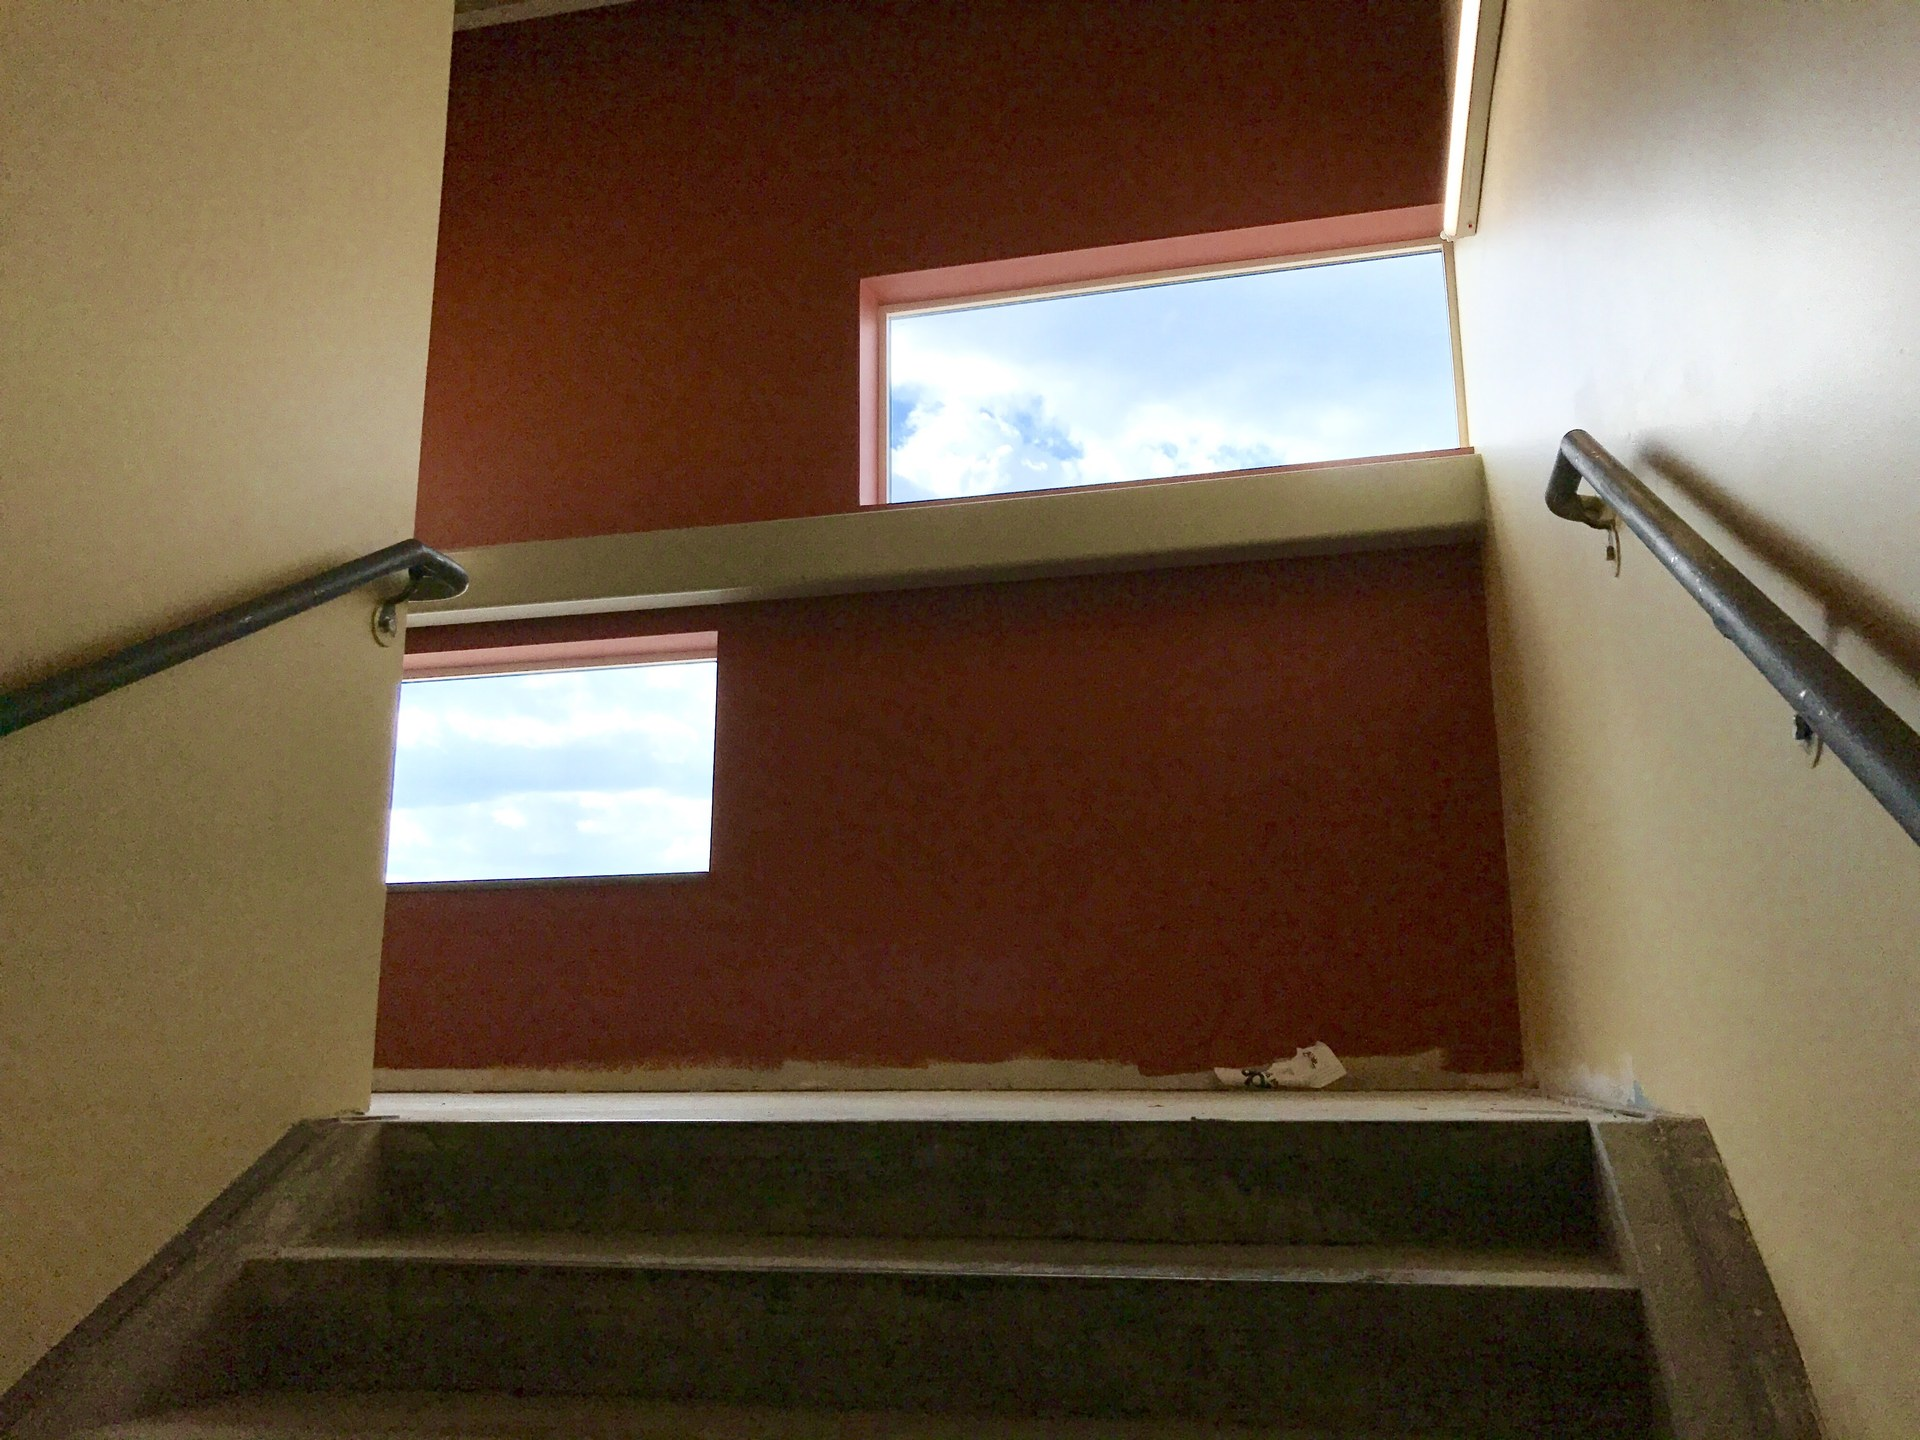 Stairwell with a red wall and windows showing blue sky